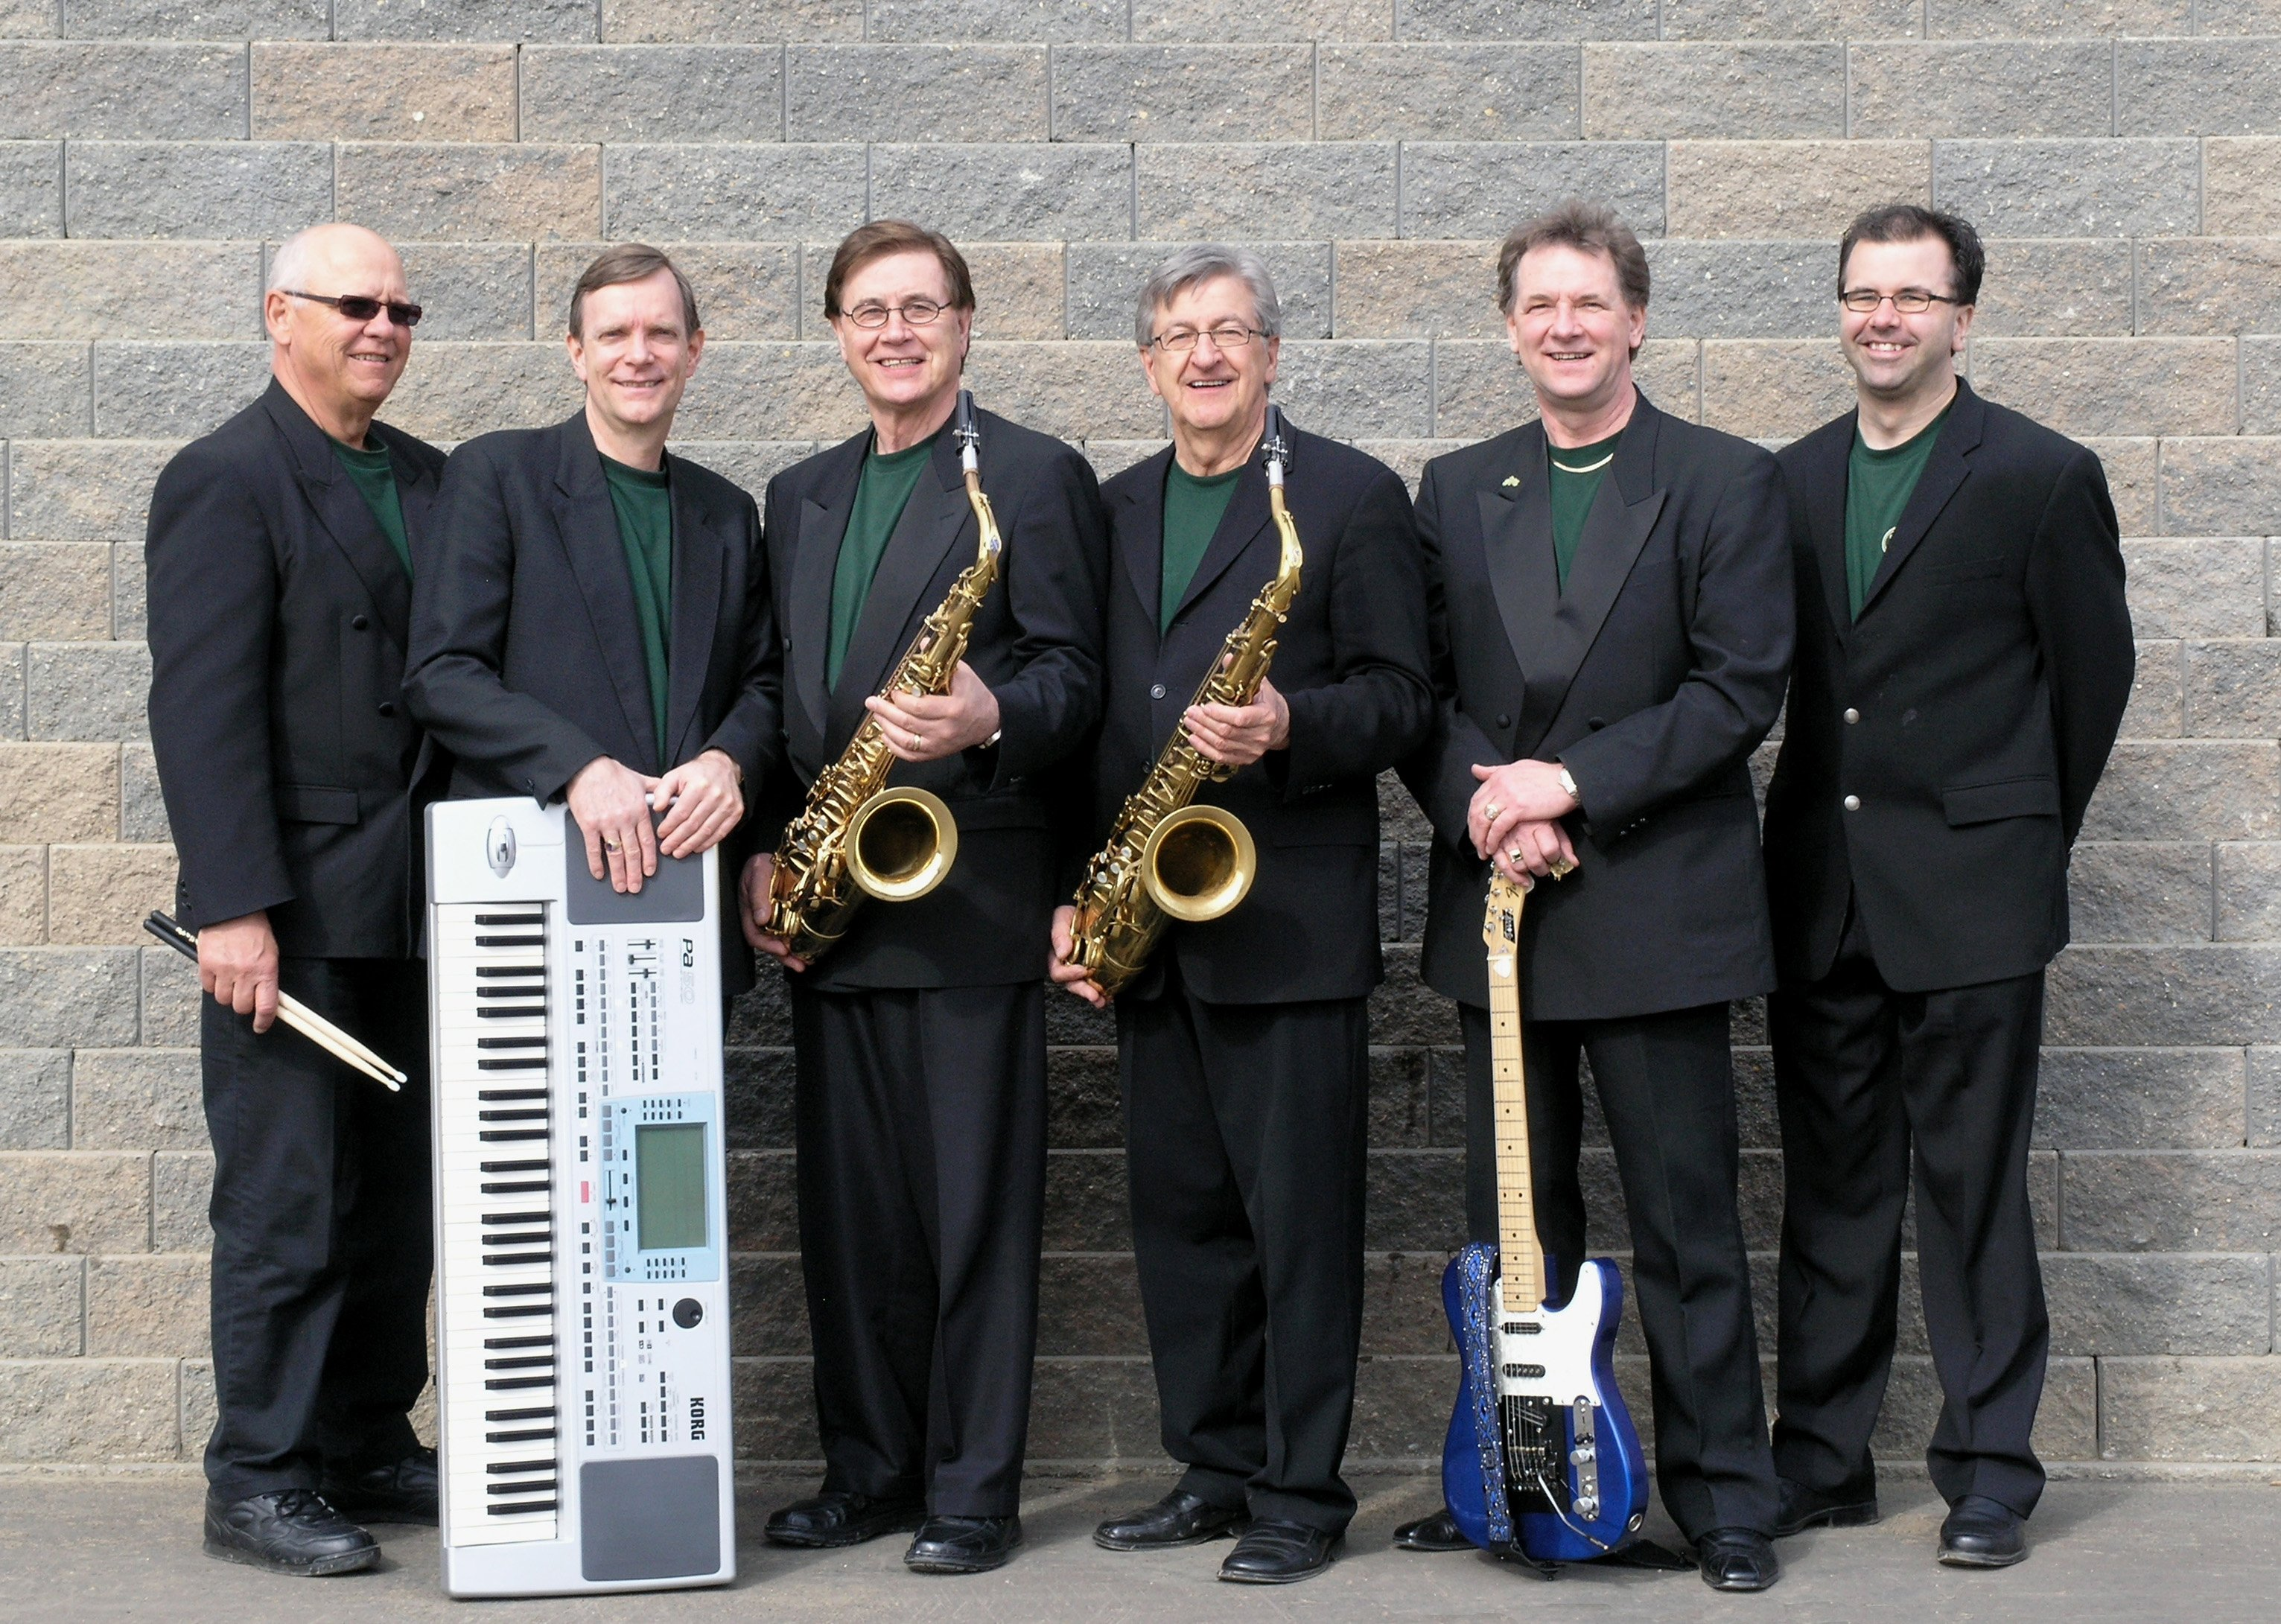 6 members of The Emeralds polka band wearing black suits and emerald green shirts holding their instruments.